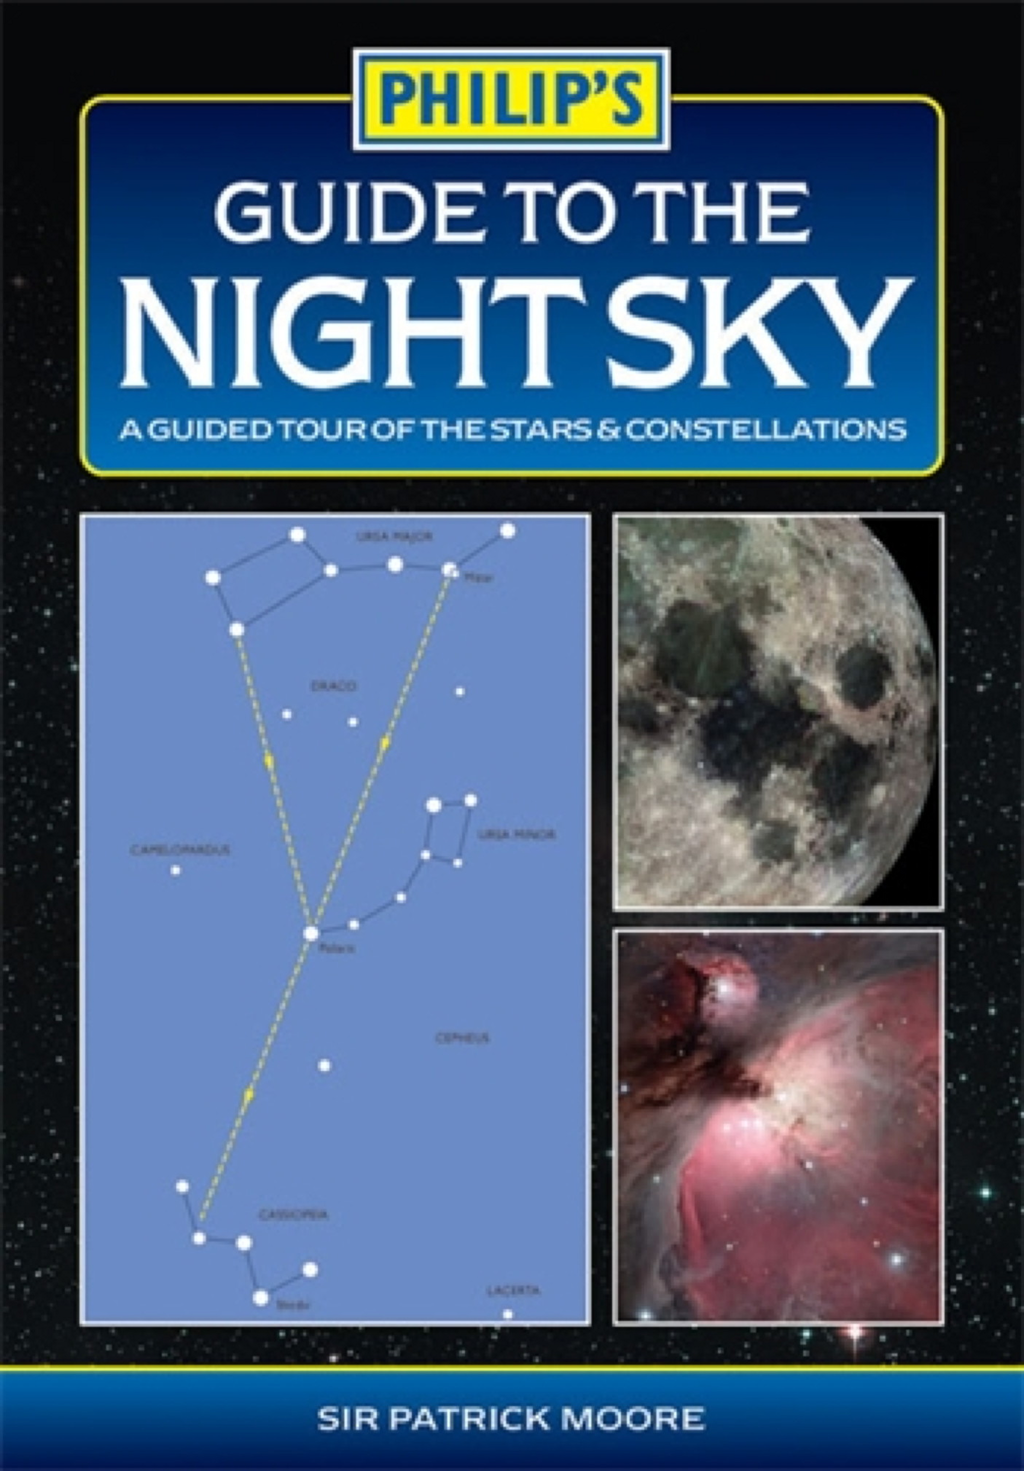 Philip's Guide to the Night Sky A guided tour of the stars and constellations